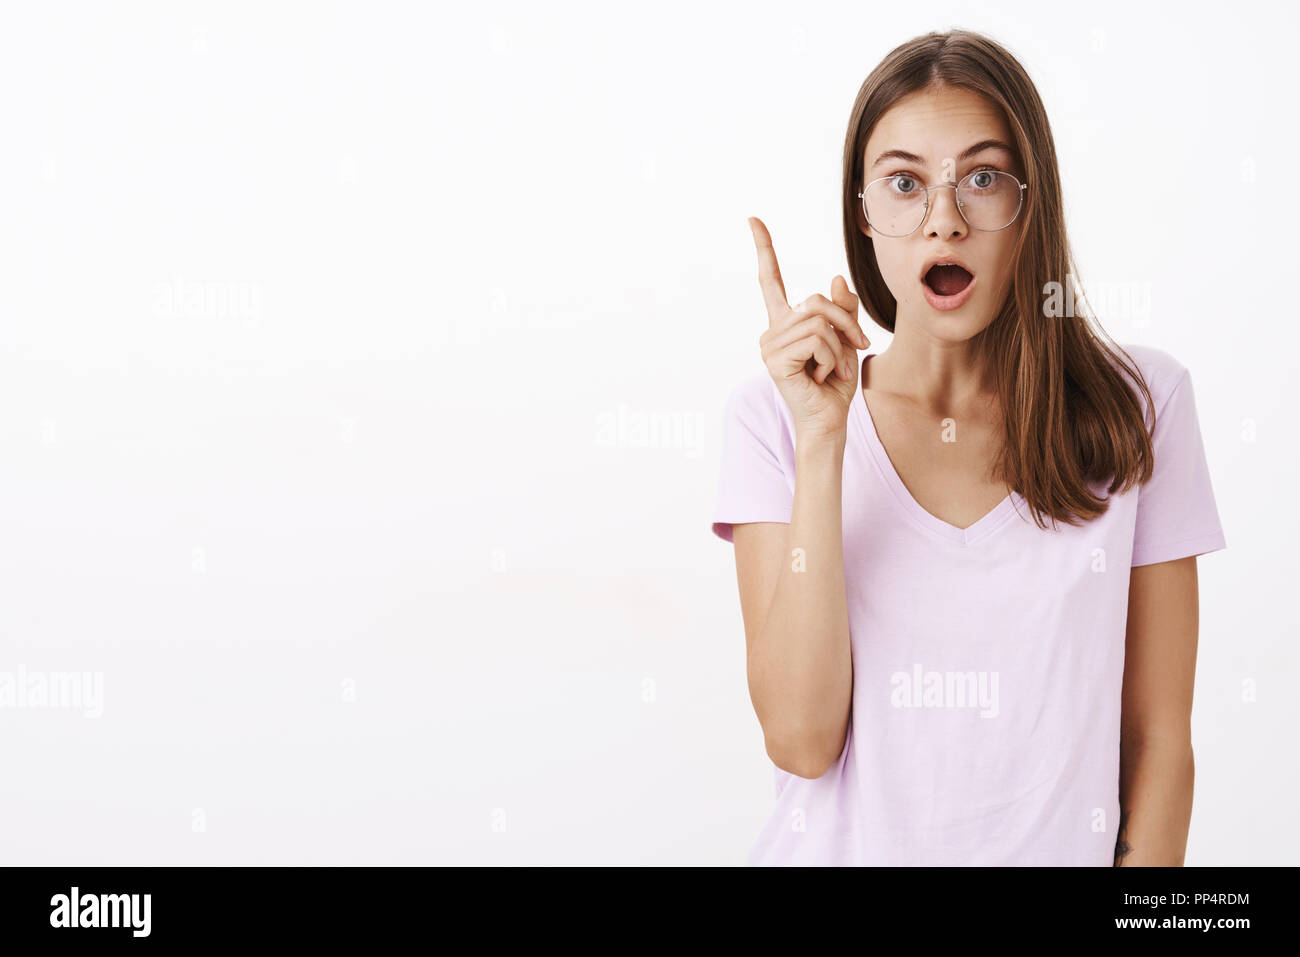 I got excellent suggestion. Smart and creative excited good-looking girl in glasses opening mouth while telling eureka raising index finger thinking up perfect plan against white background - Stock Image